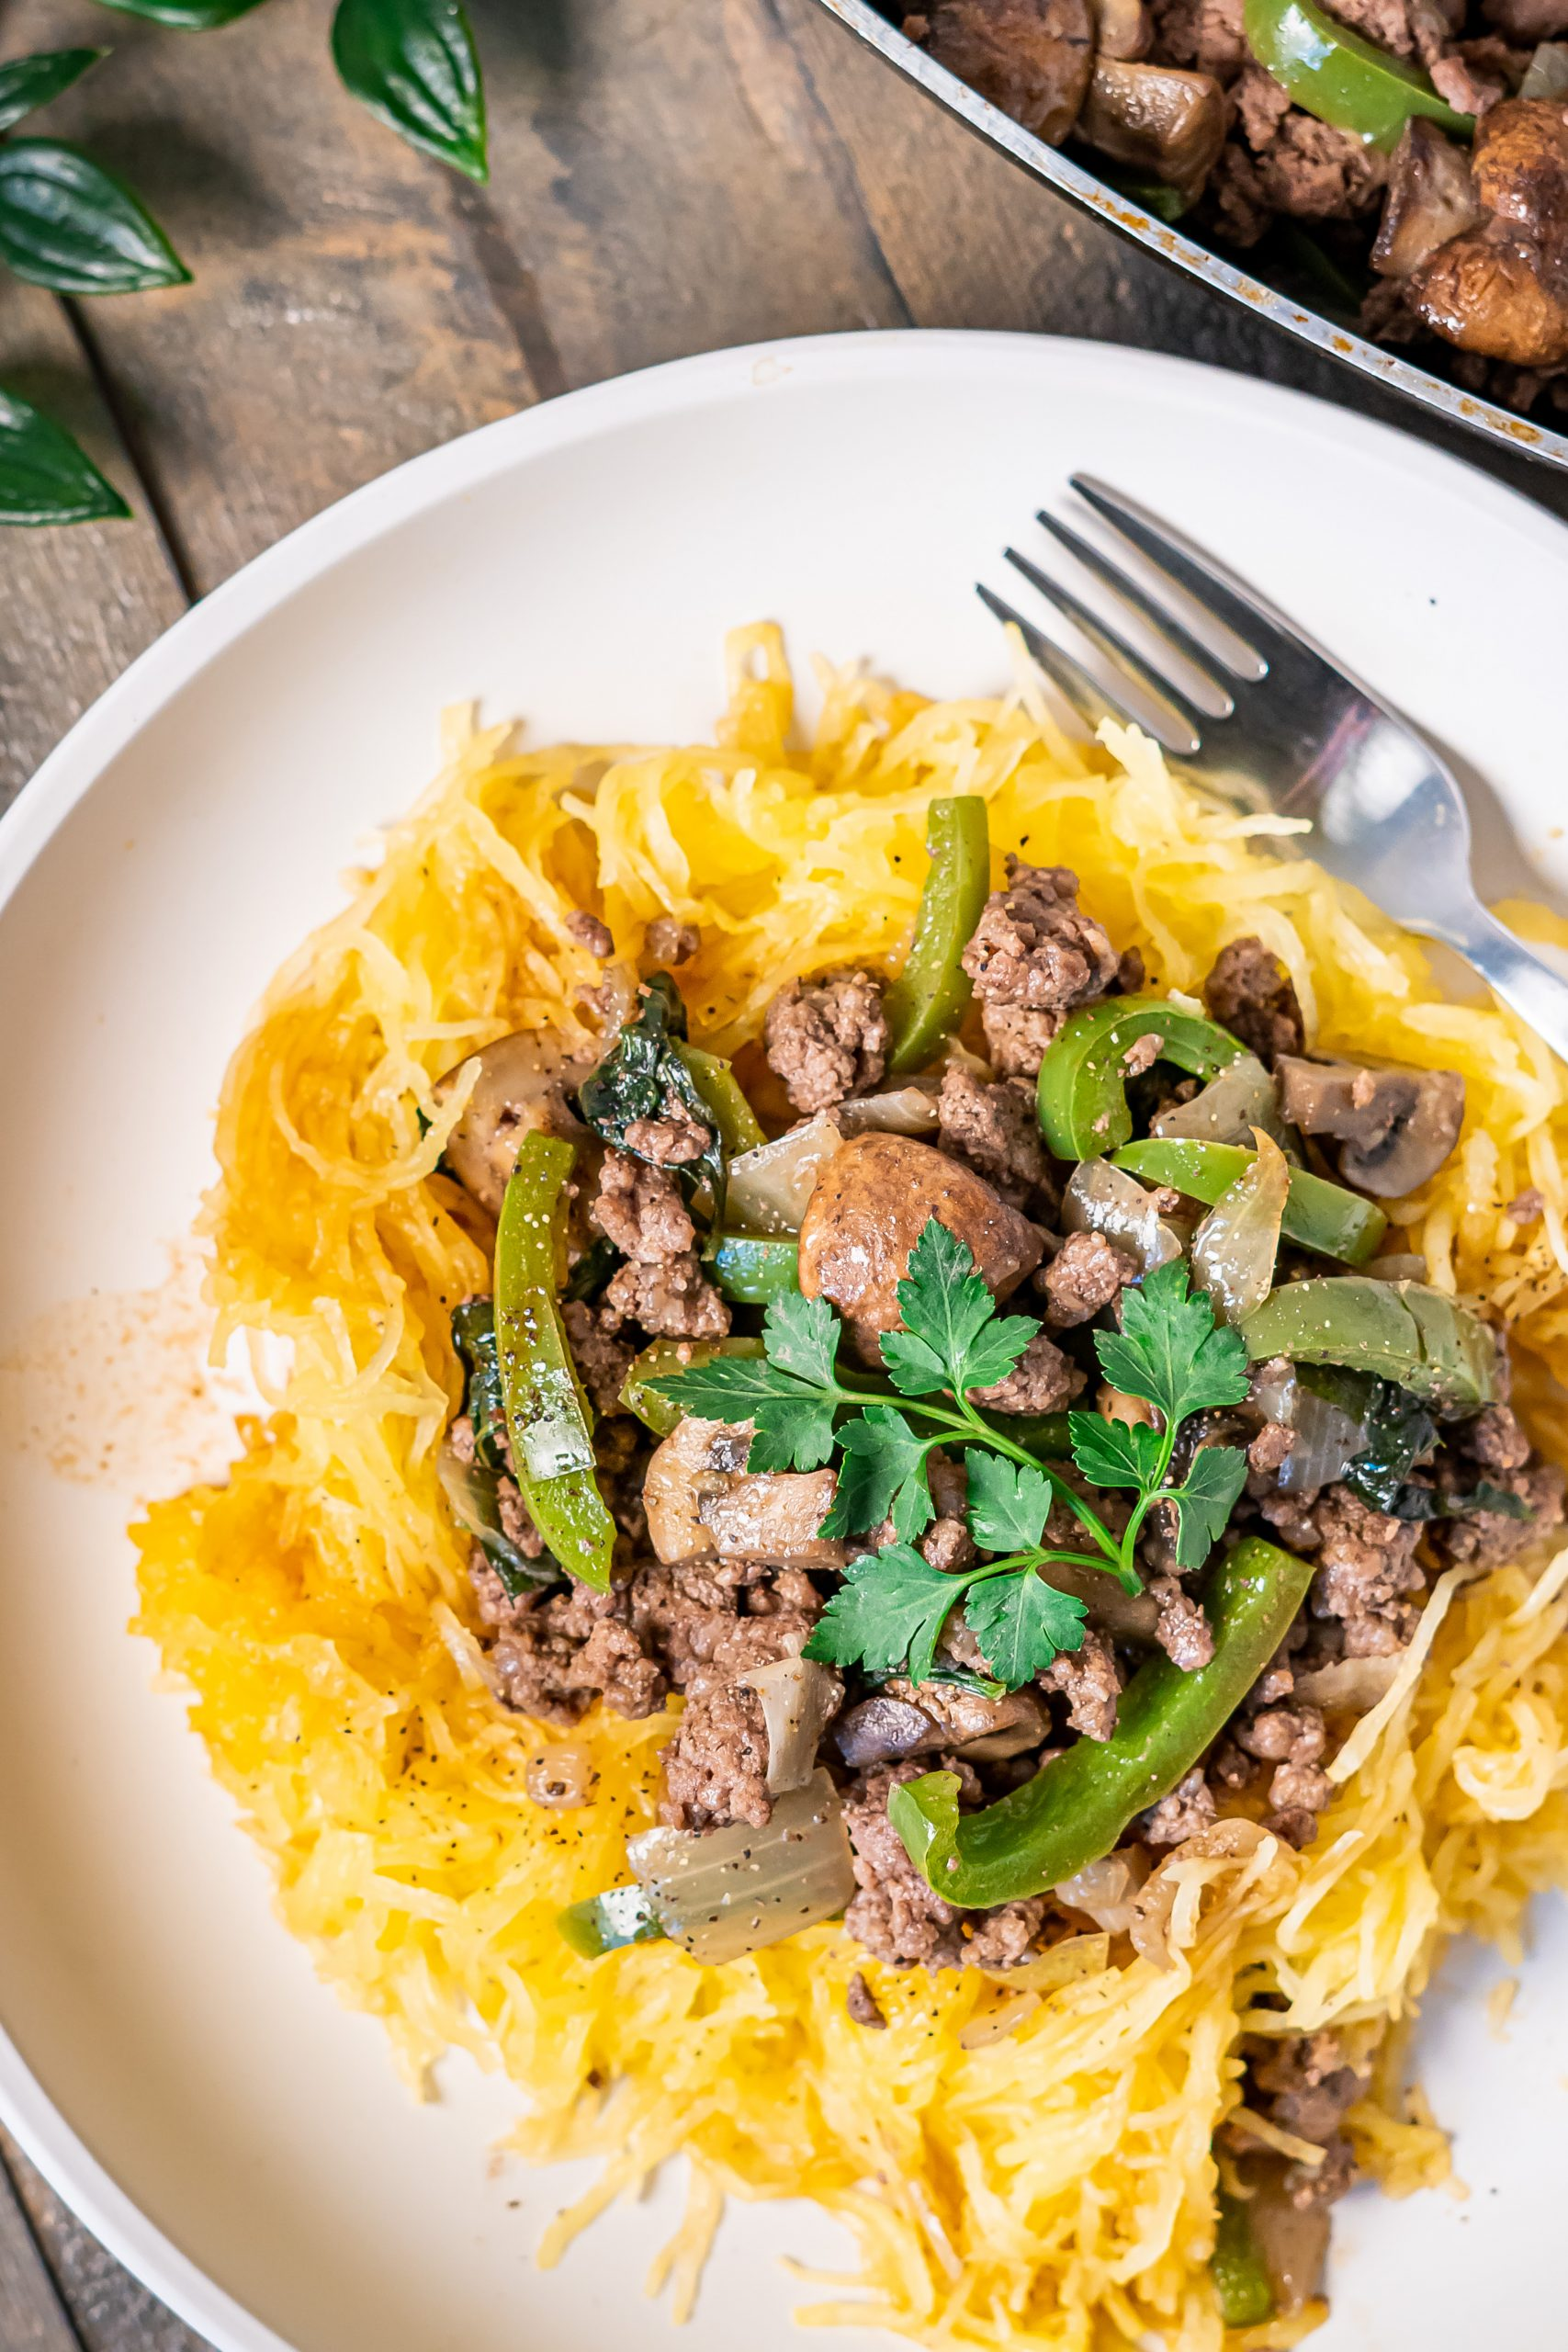 Baked spaghetti squash with beef and veggies close-up photo